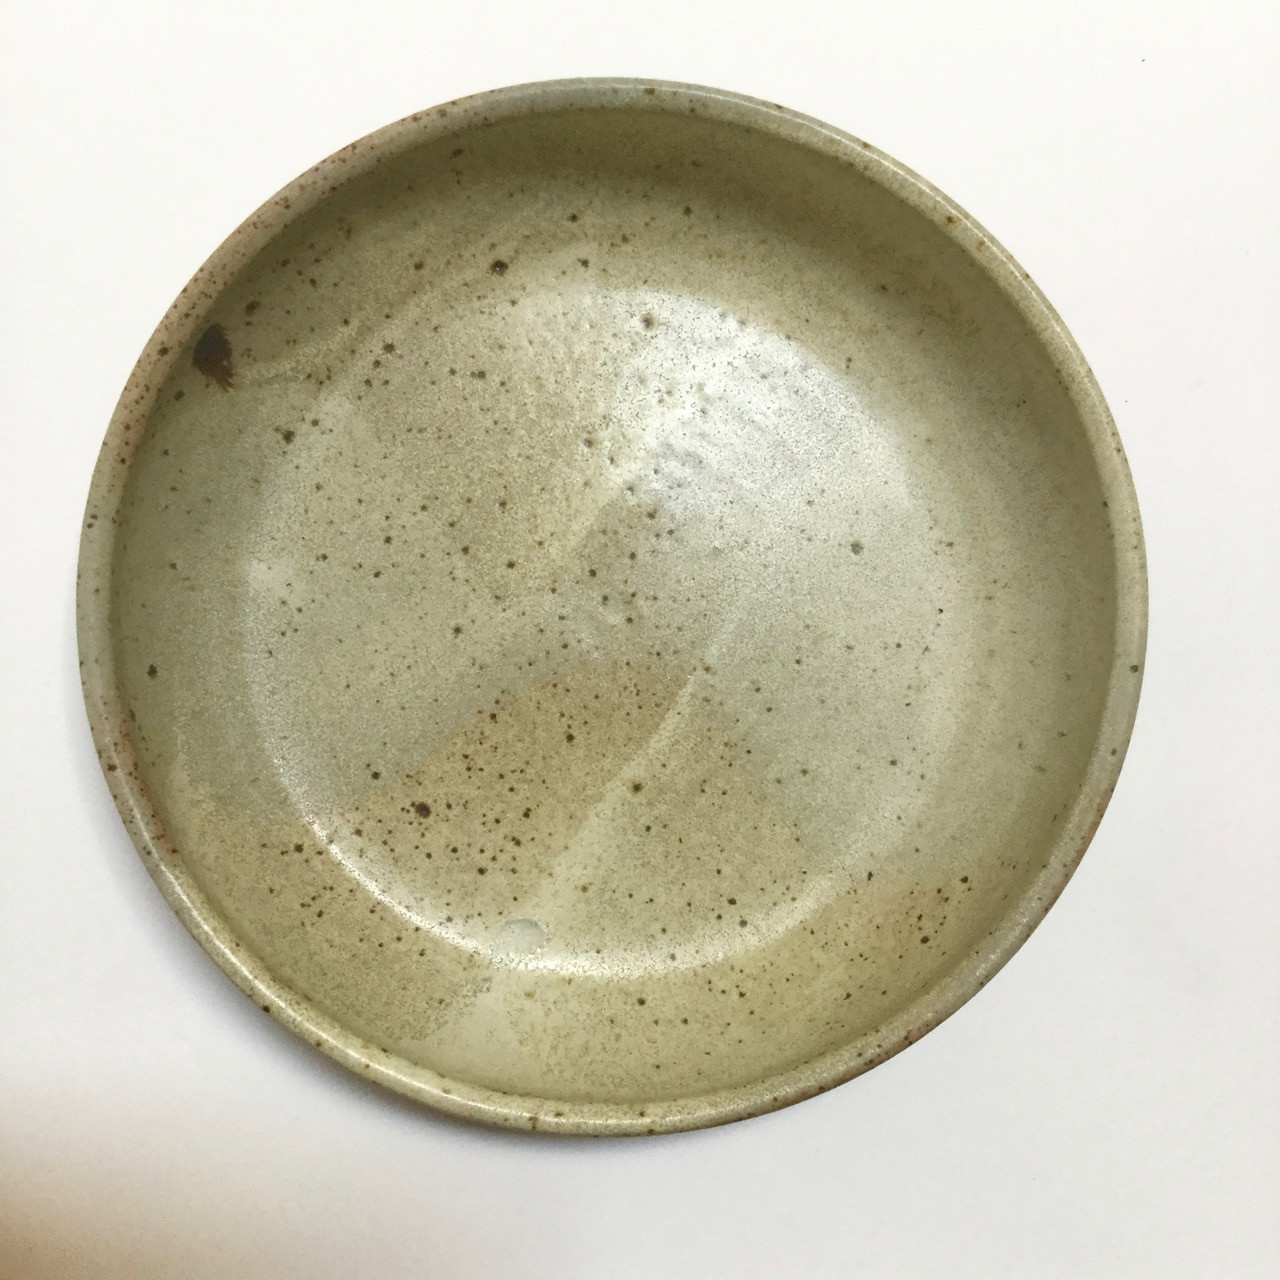 1123 Serving bowl desert sand top.jpg